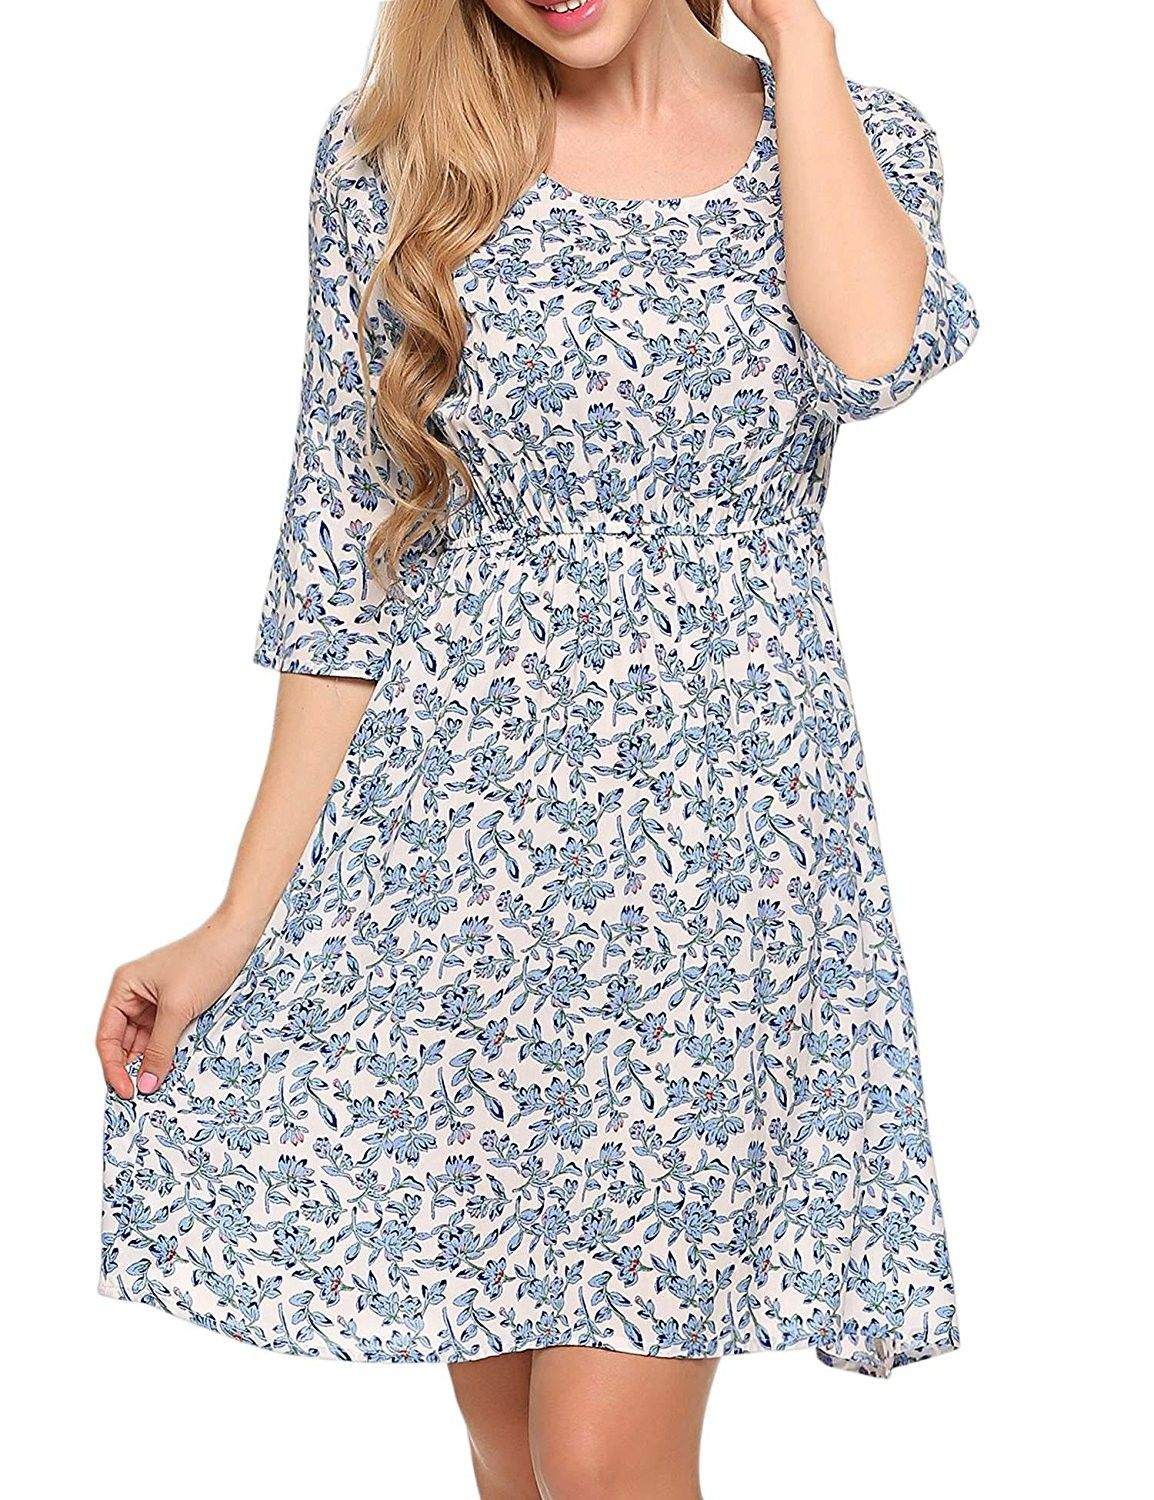 1aae35b8c Women's Print Tunic Top Dress- 3/4 Sleeve Summer Casual T Shirt Midi Dresses  - Light Blue - CV184HIN9XQ,Women's Clothing, Tops & Tees, Tunics #women ...